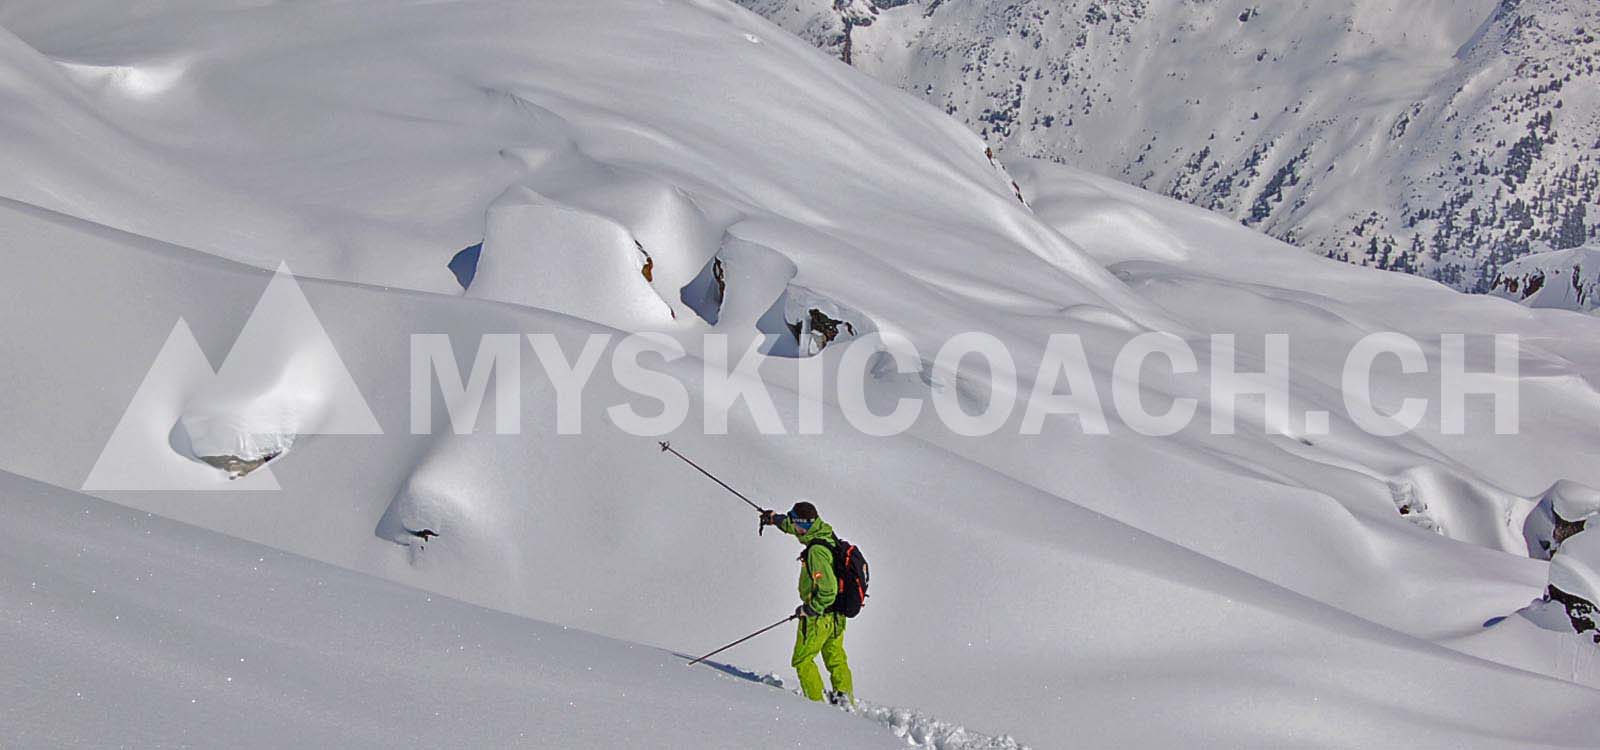 [:fr]FORMATION FREERIDE ¦ cours prive freeride hors piste adulte ¦ MySkiCoach.ch[:en]FREERIDE INSTRUCTION ¦ Private freeride lesson for adults ¦ MySkiCoach.ch[:]